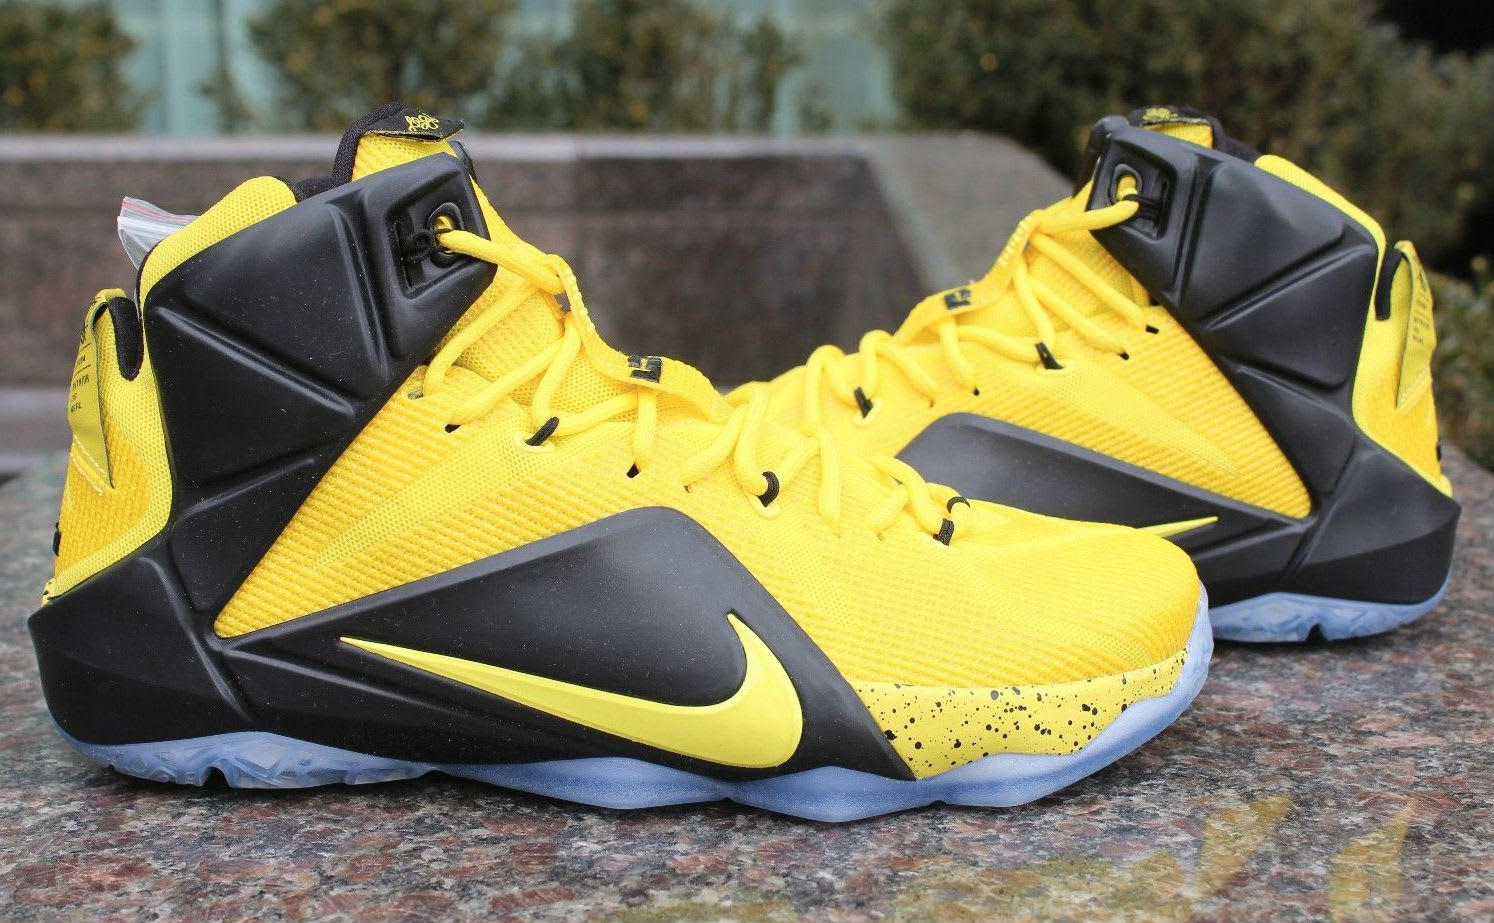 4f23203f65df https   solecollector.com news 2016 03 release-roundup-the-sneakers ...